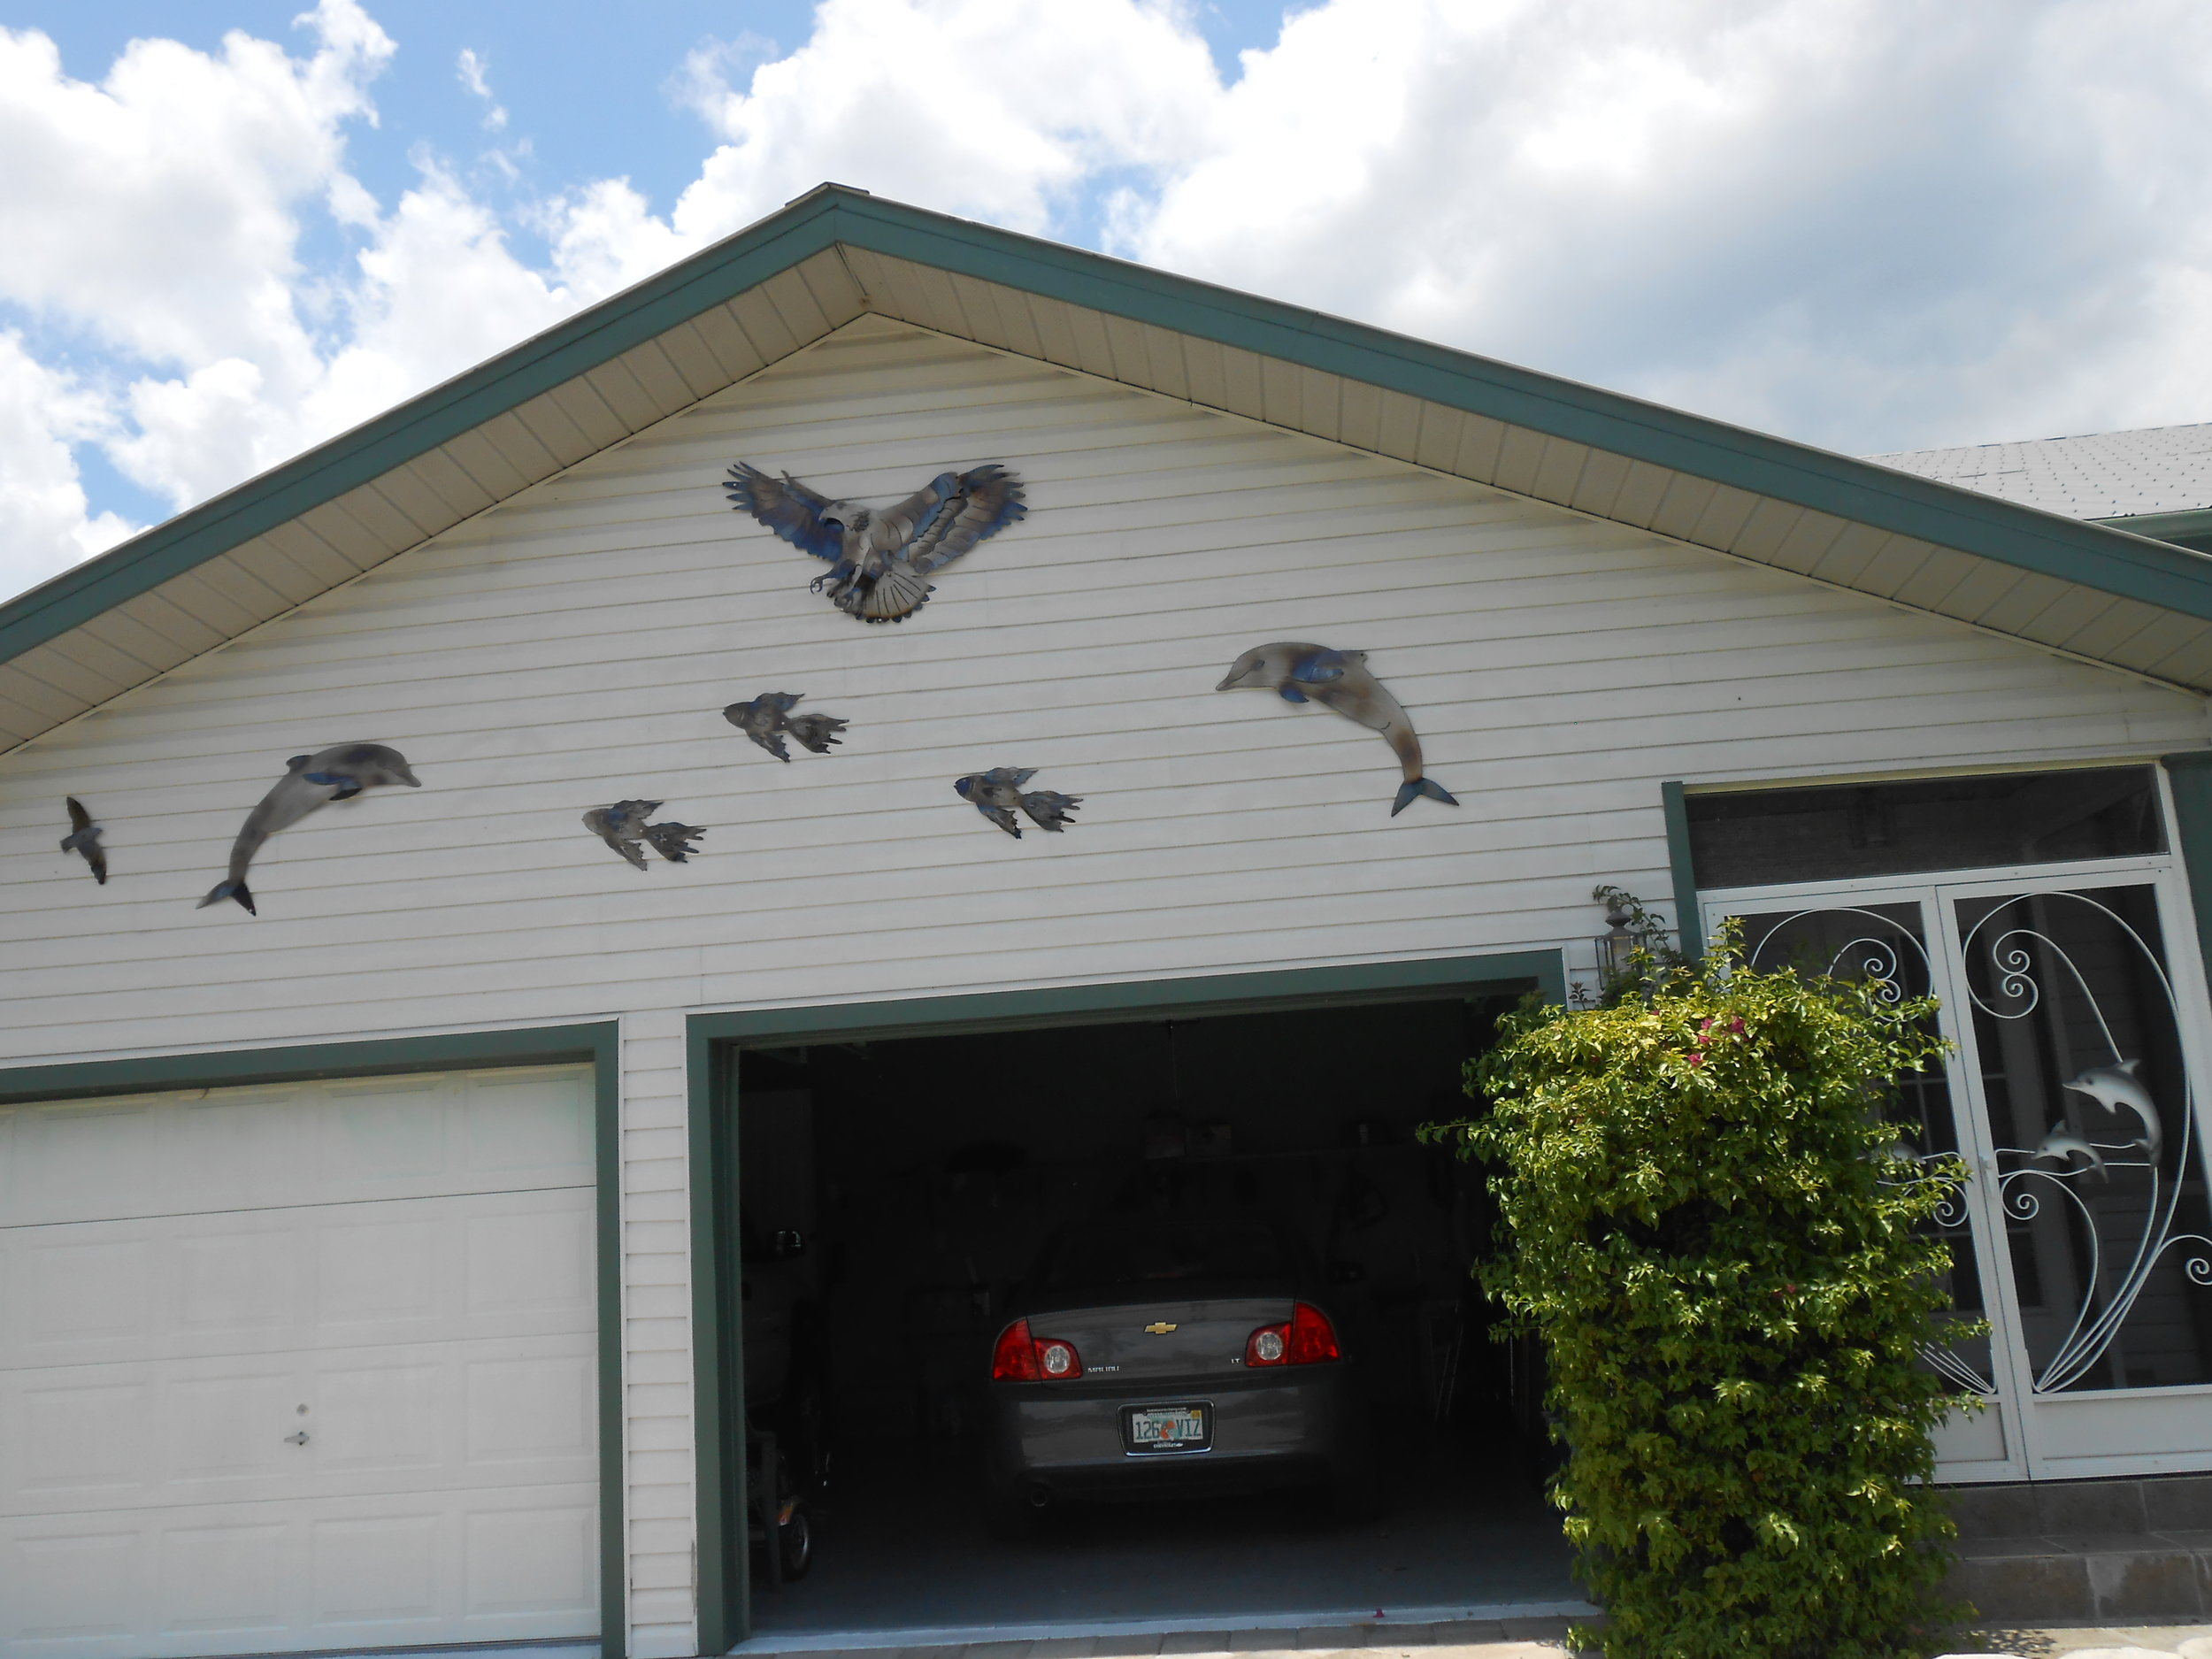 15A EAGLE SCENE ON GARAGE.JPG